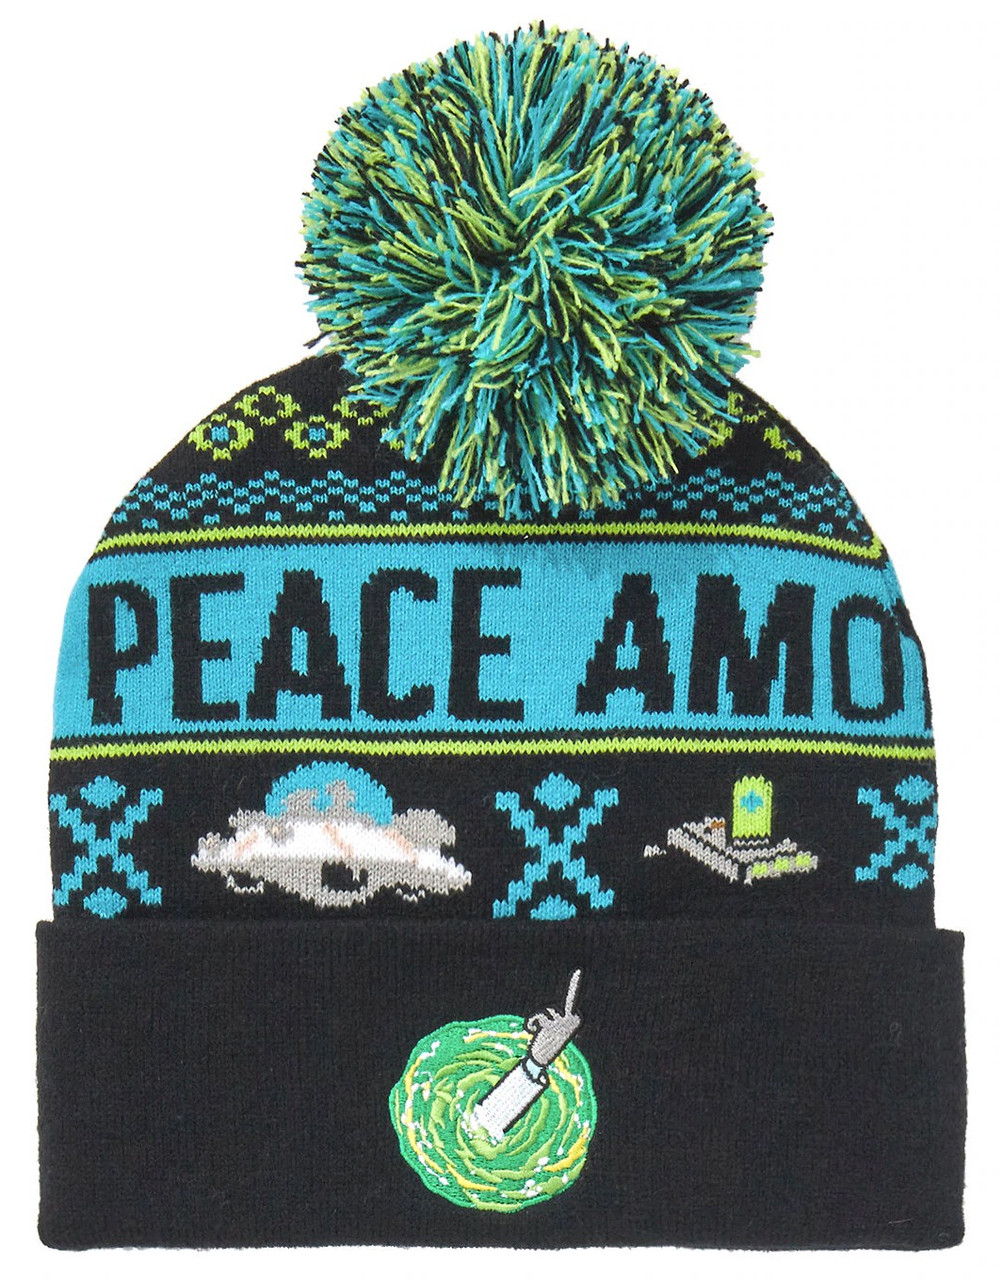 Rick Morty Peace Among Worlds Beanie Hat Bioworld Toywiz